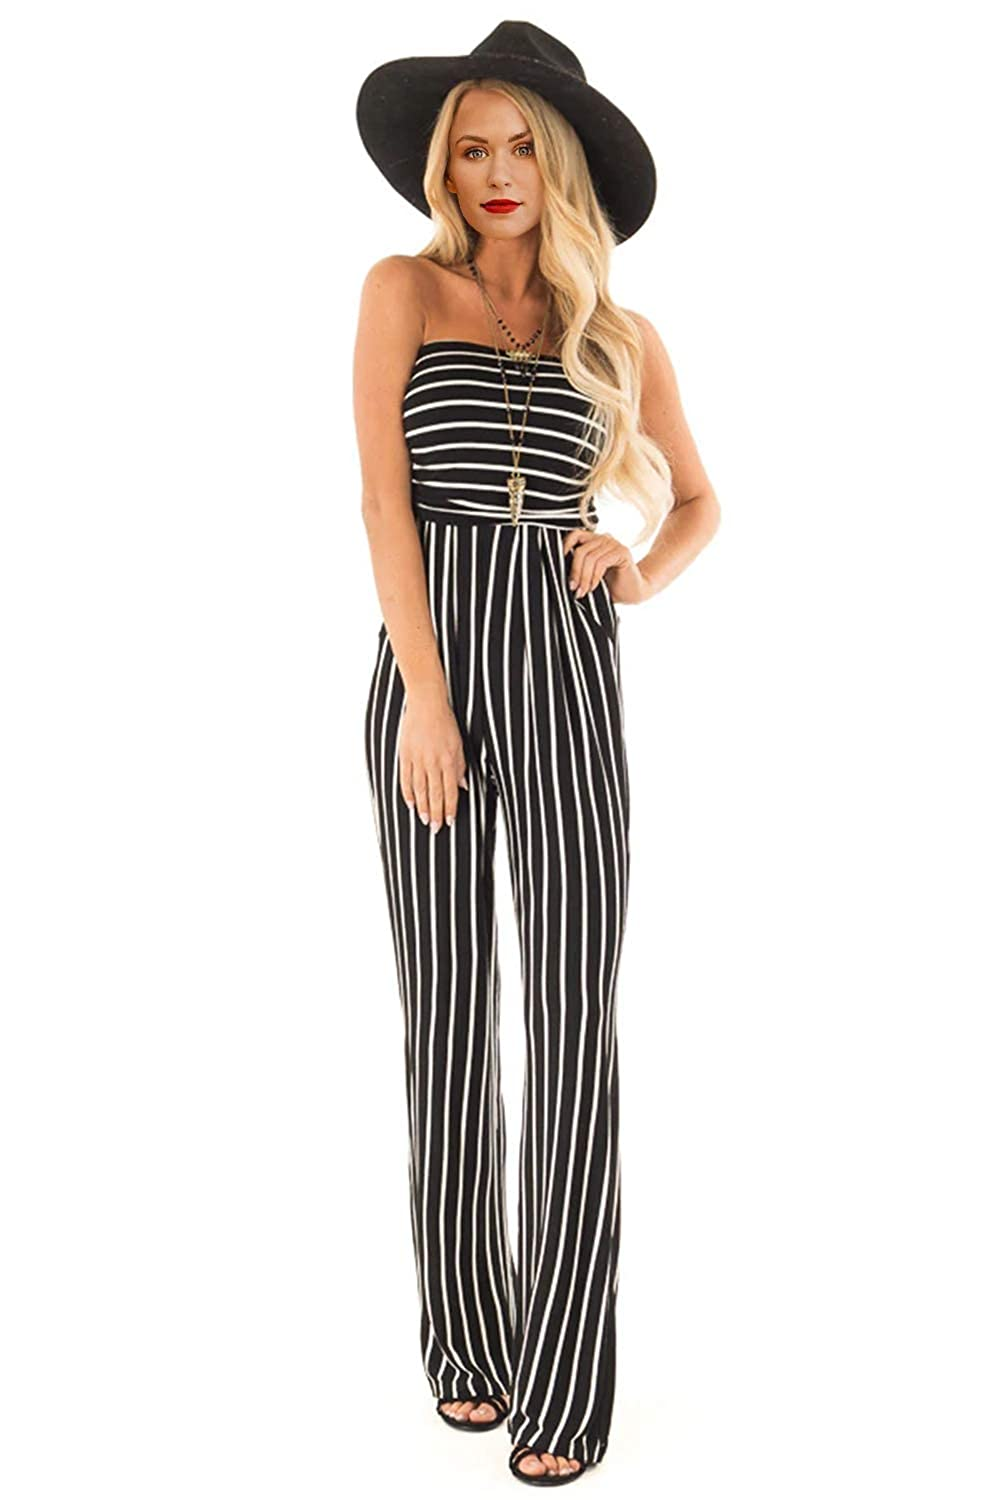 Wxnow Womens Tube Top Sleeveless Striped Wide Legs Casual Pants High Waist Jumpsuit